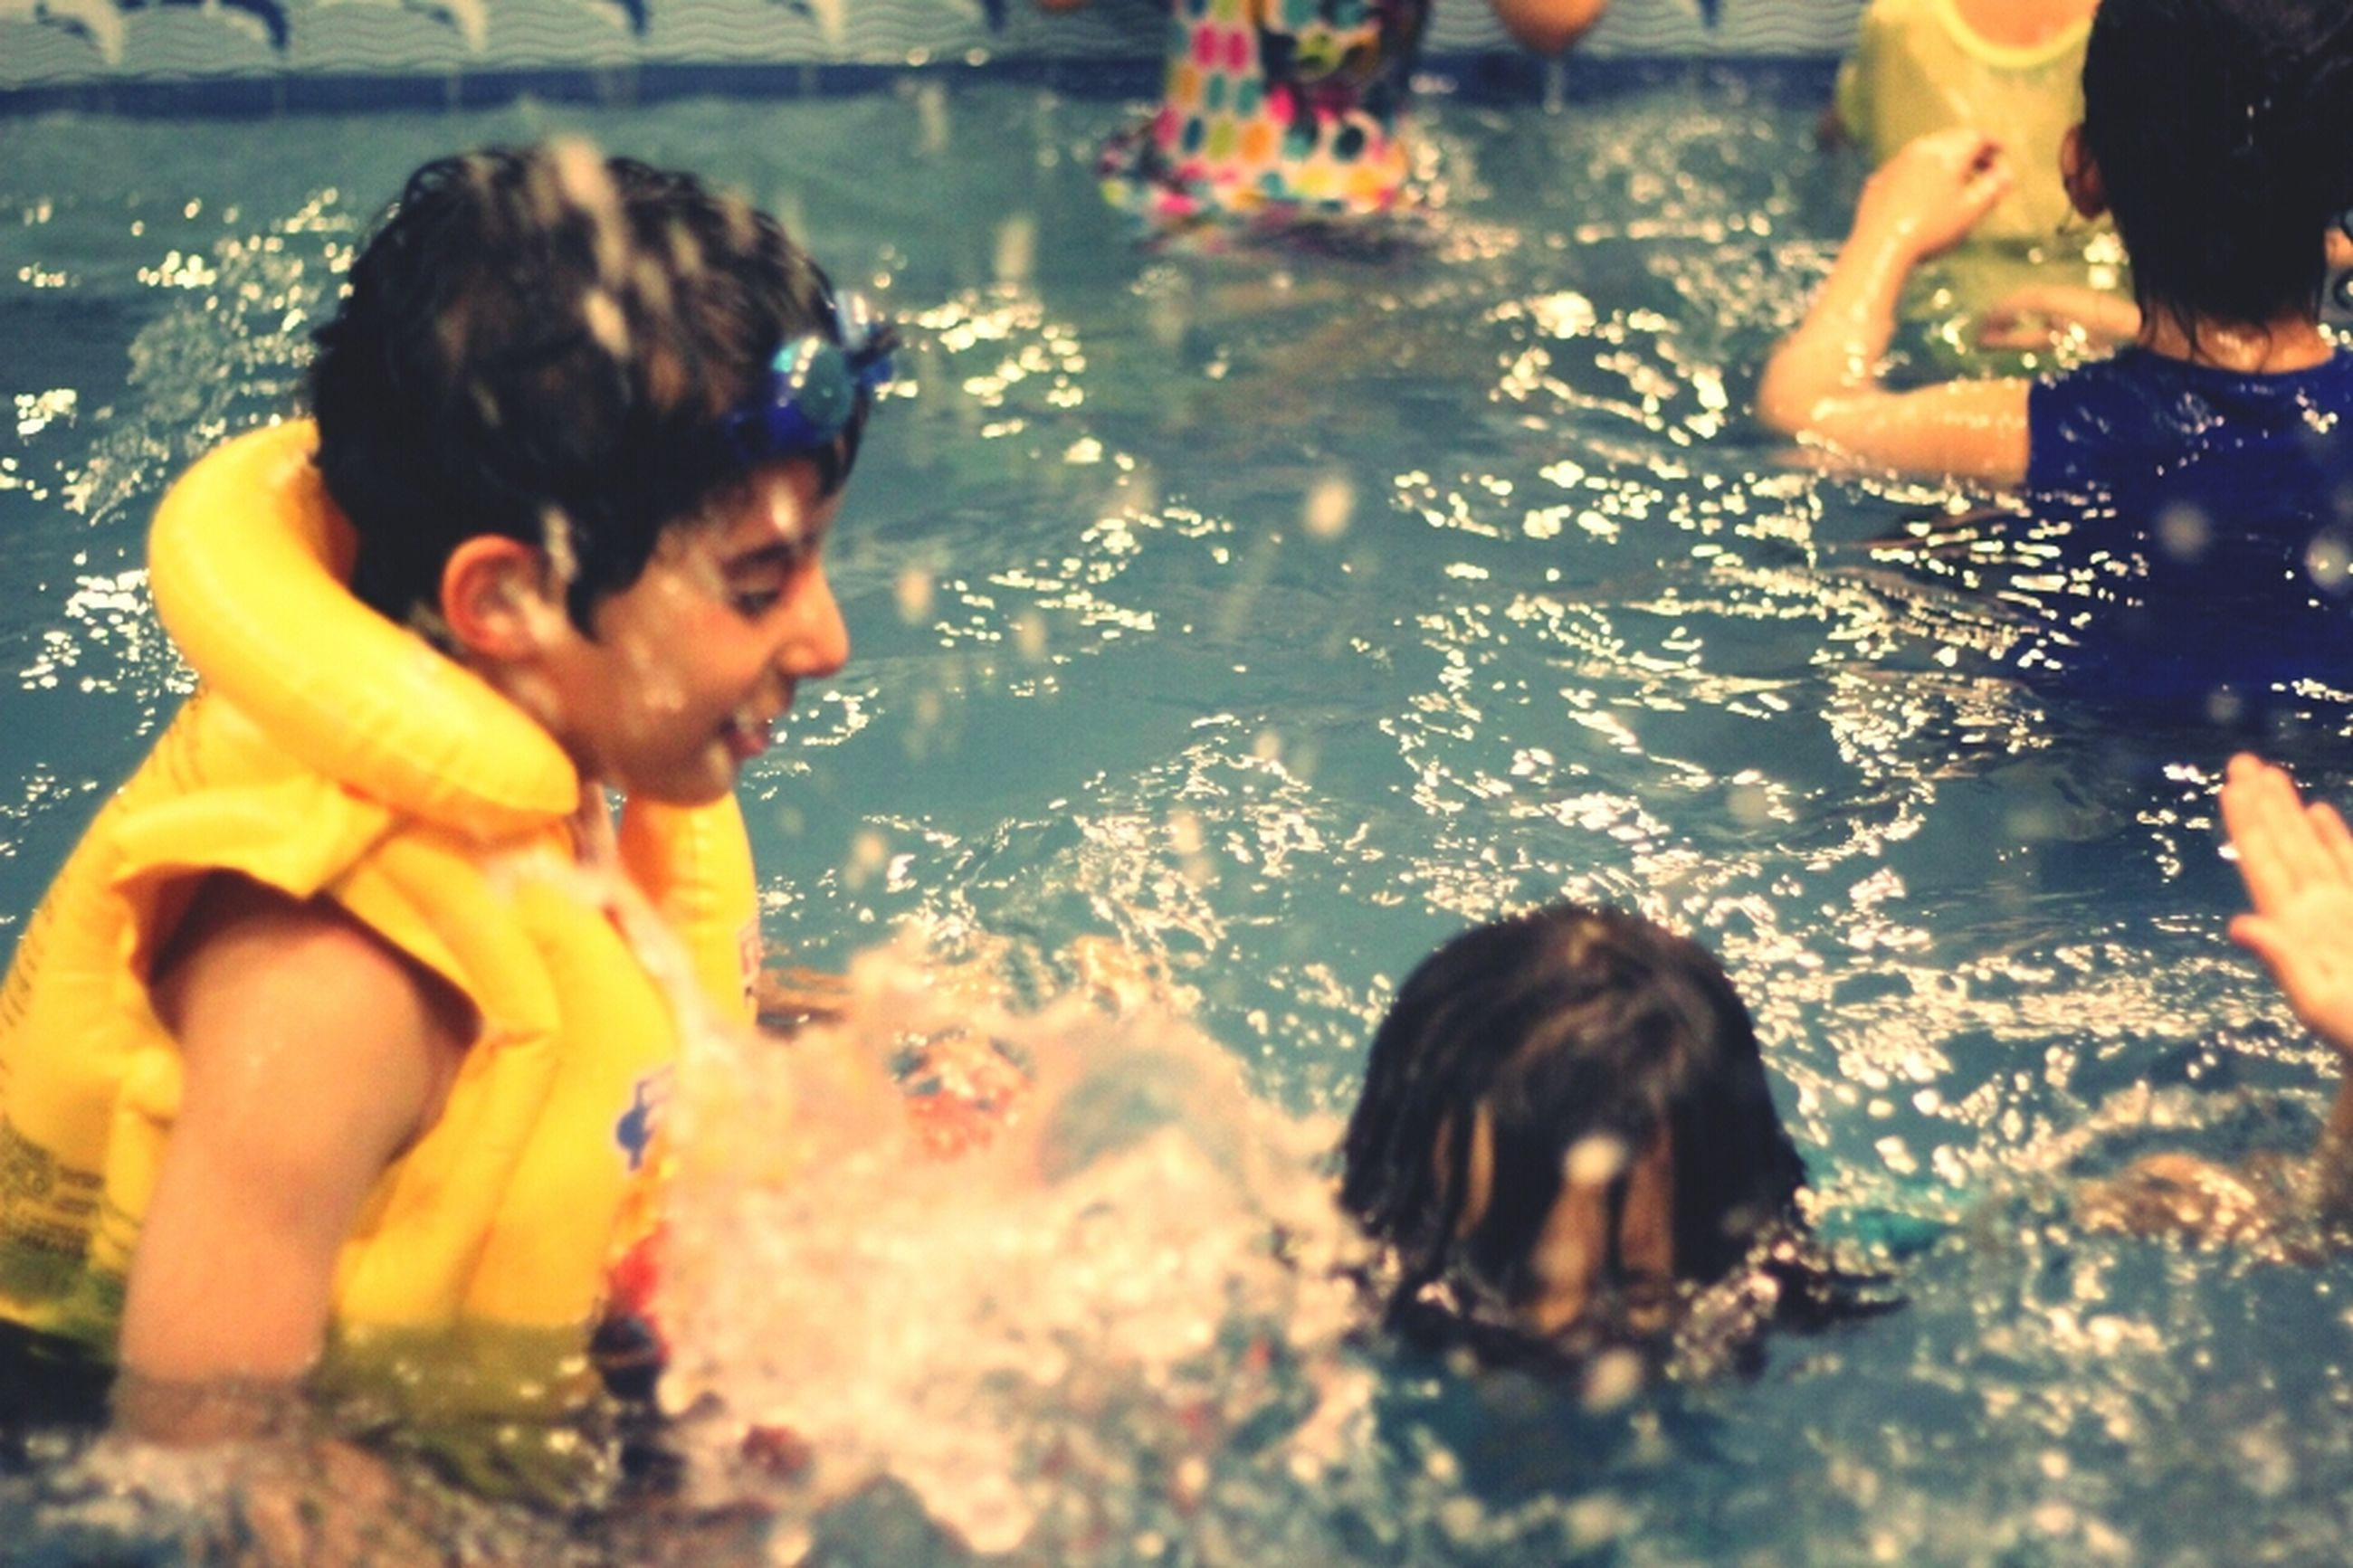 leisure activity, lifestyles, enjoyment, fun, childhood, togetherness, person, indoors, water, playing, girls, celebration, holding, boys, happiness, elementary age, large group of people